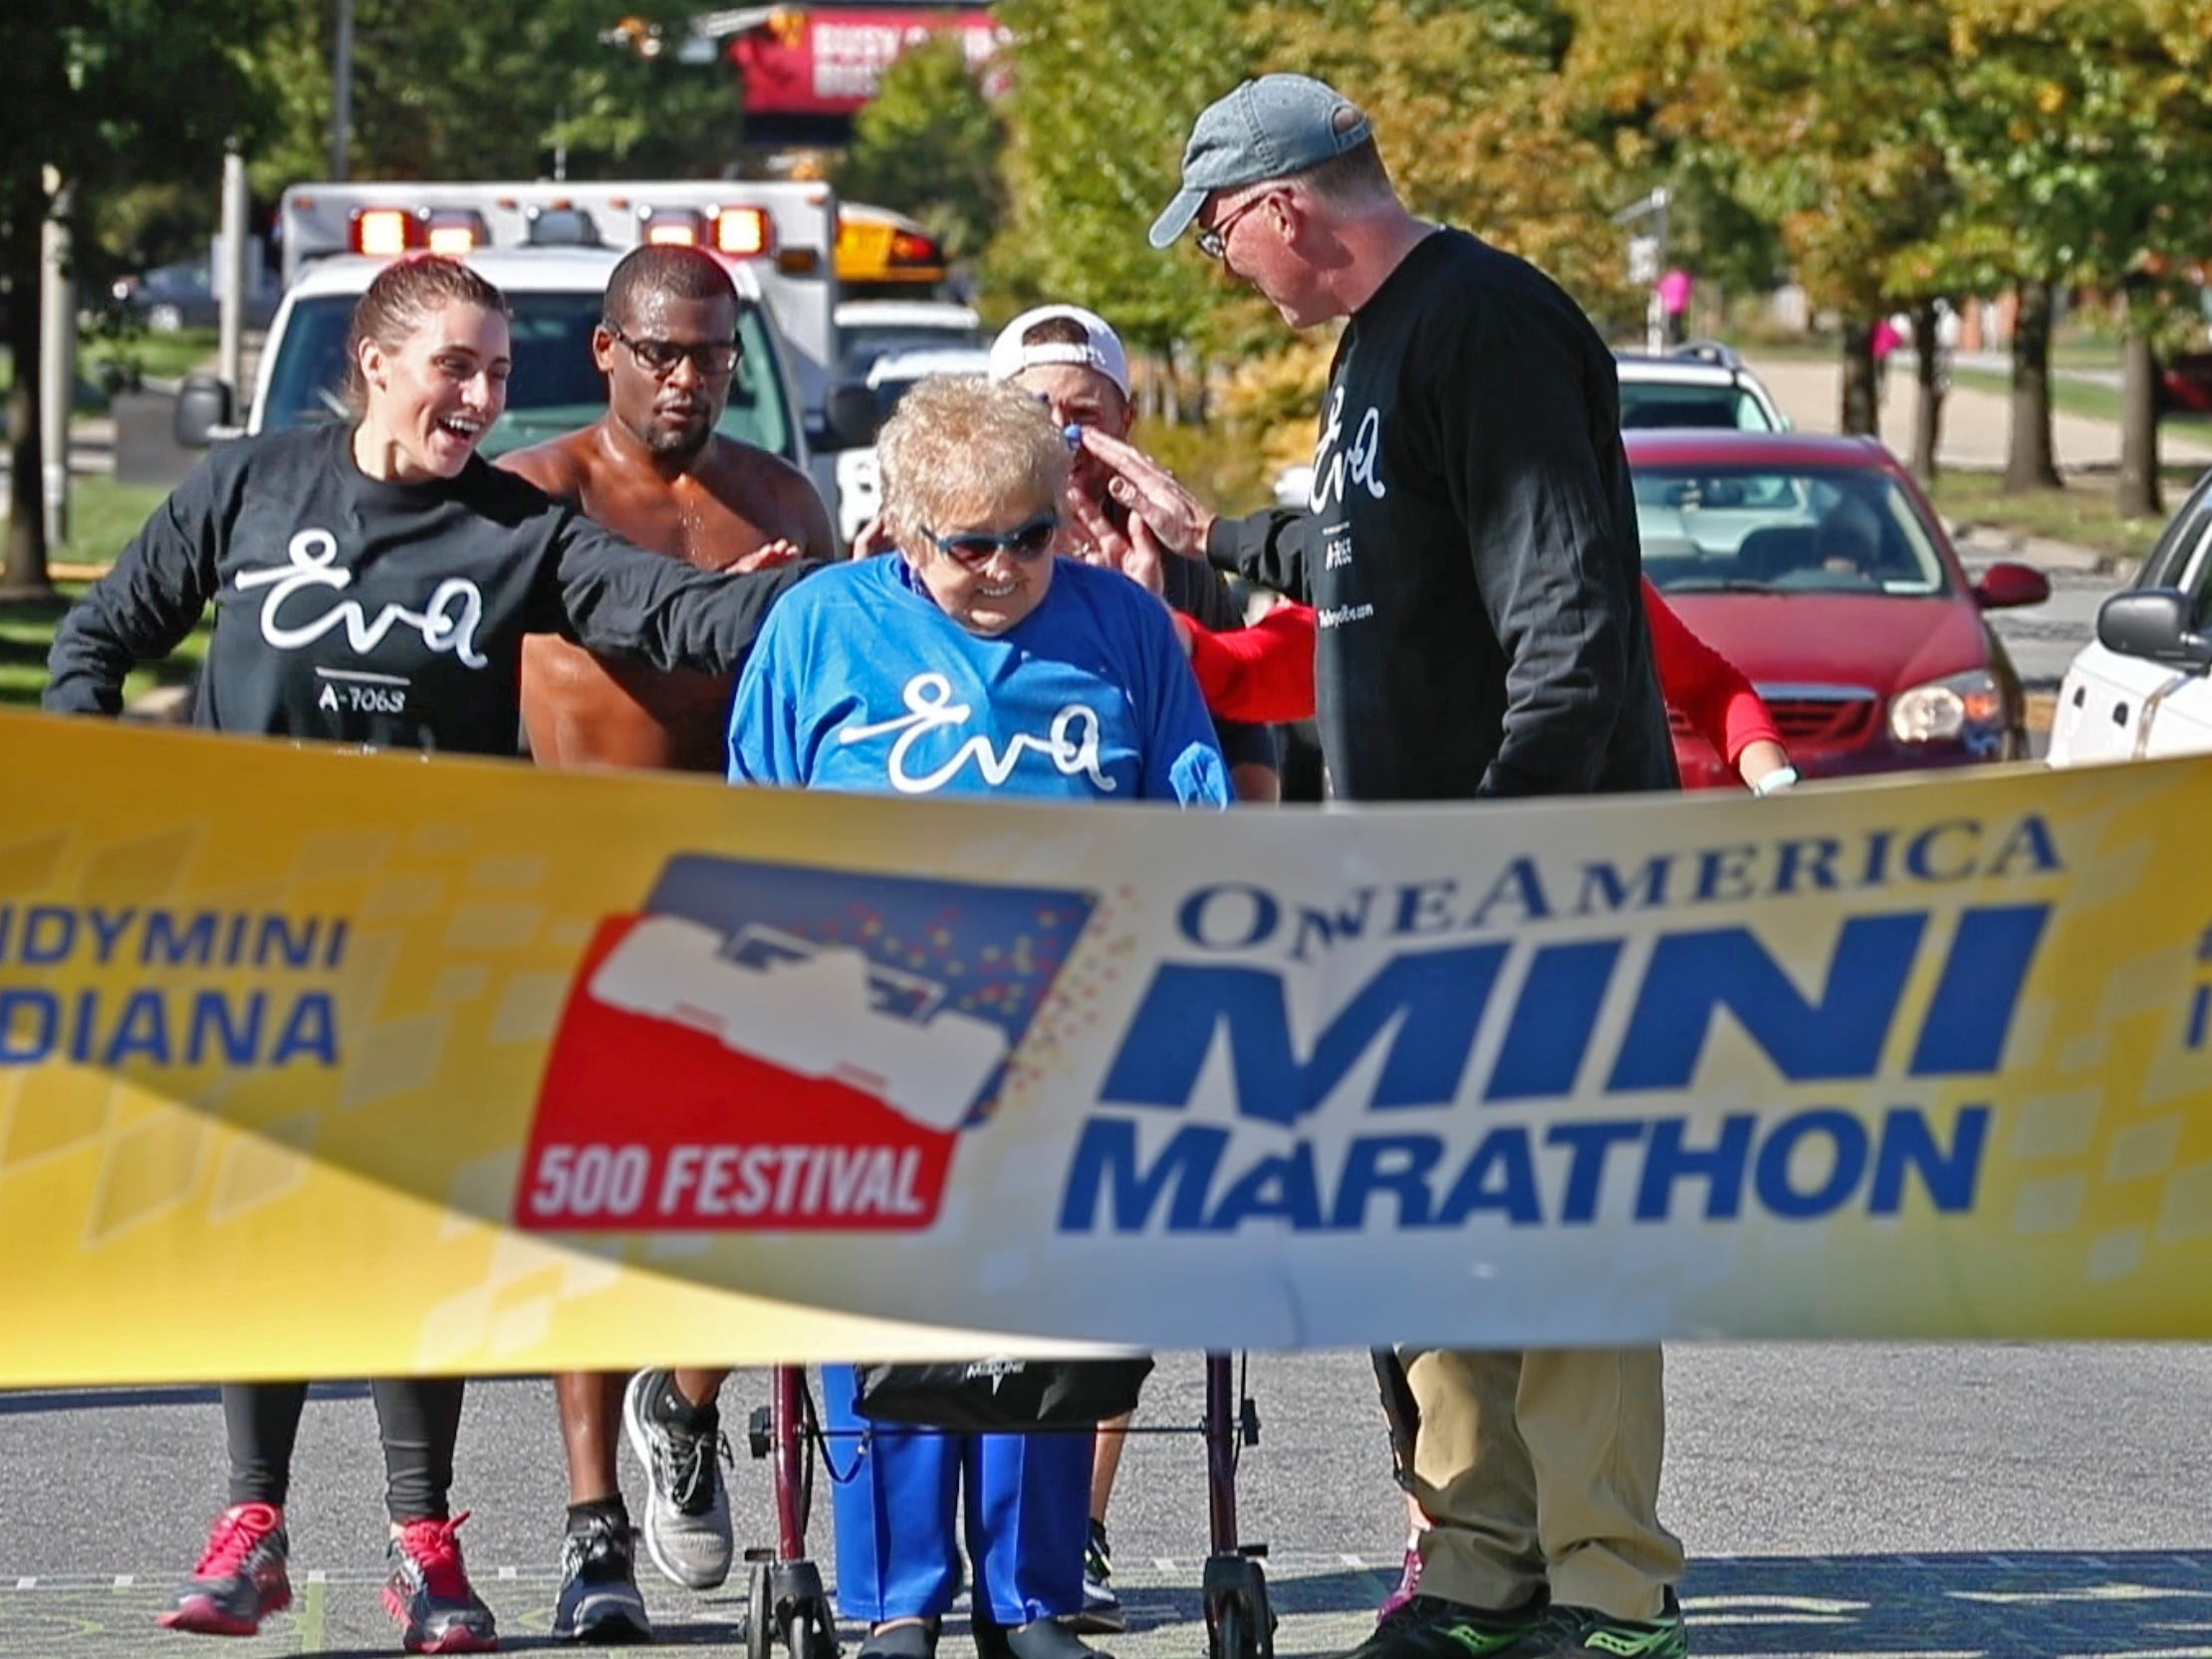 Holocaust survivor Eva Kor gets ready to run the end leg of the pace-setting run for the 2019 OneAmerica 500 Festival Mini-Marathon, Wednesday, Oct. 24, 2018.  The 500 Festival will donate $1 to the CANDLES Holocaust Museum in Terre Haute for every mini-marathon participant who finishes the 2019 race in a better time than Team Eva, which was 2 hours, 7 minutes, 36 seconds.